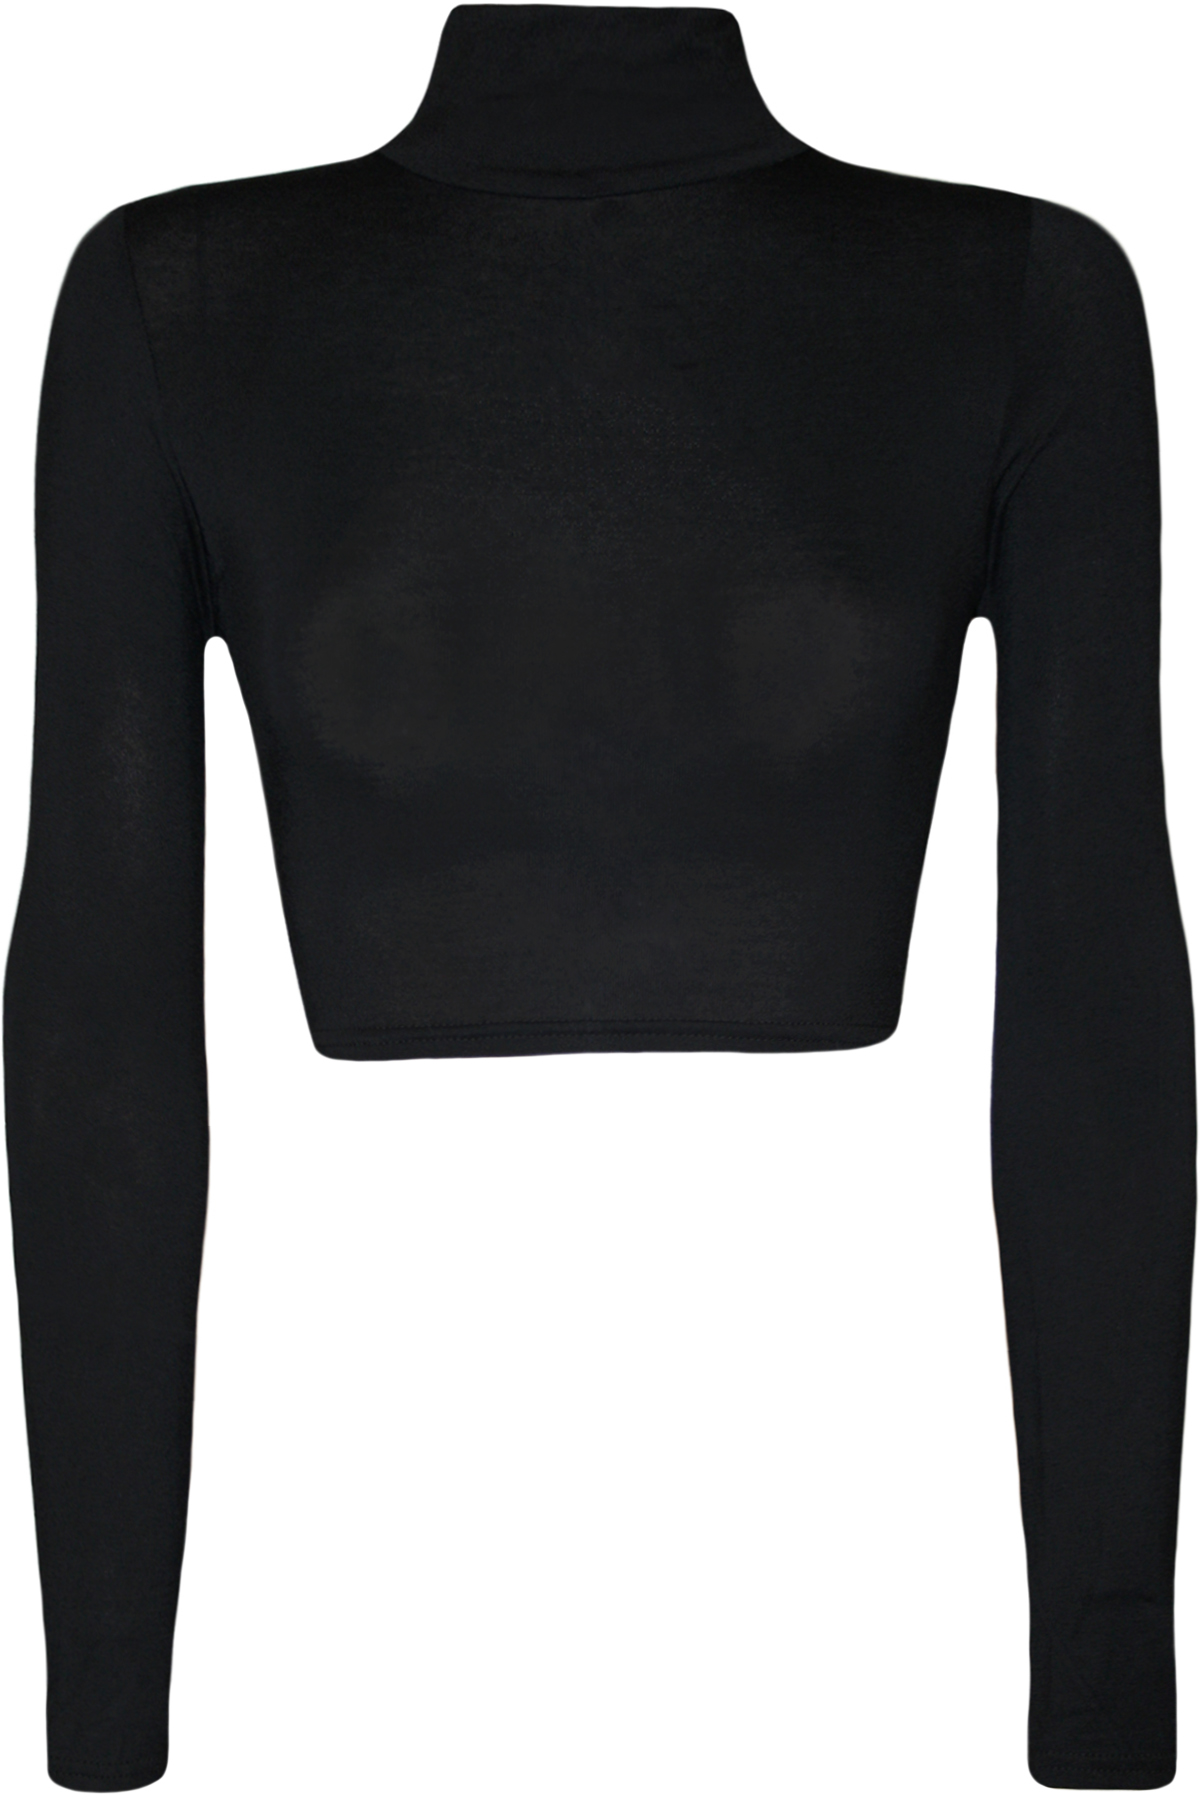 Find great deals on eBay for polo neck. Shop with confidence.